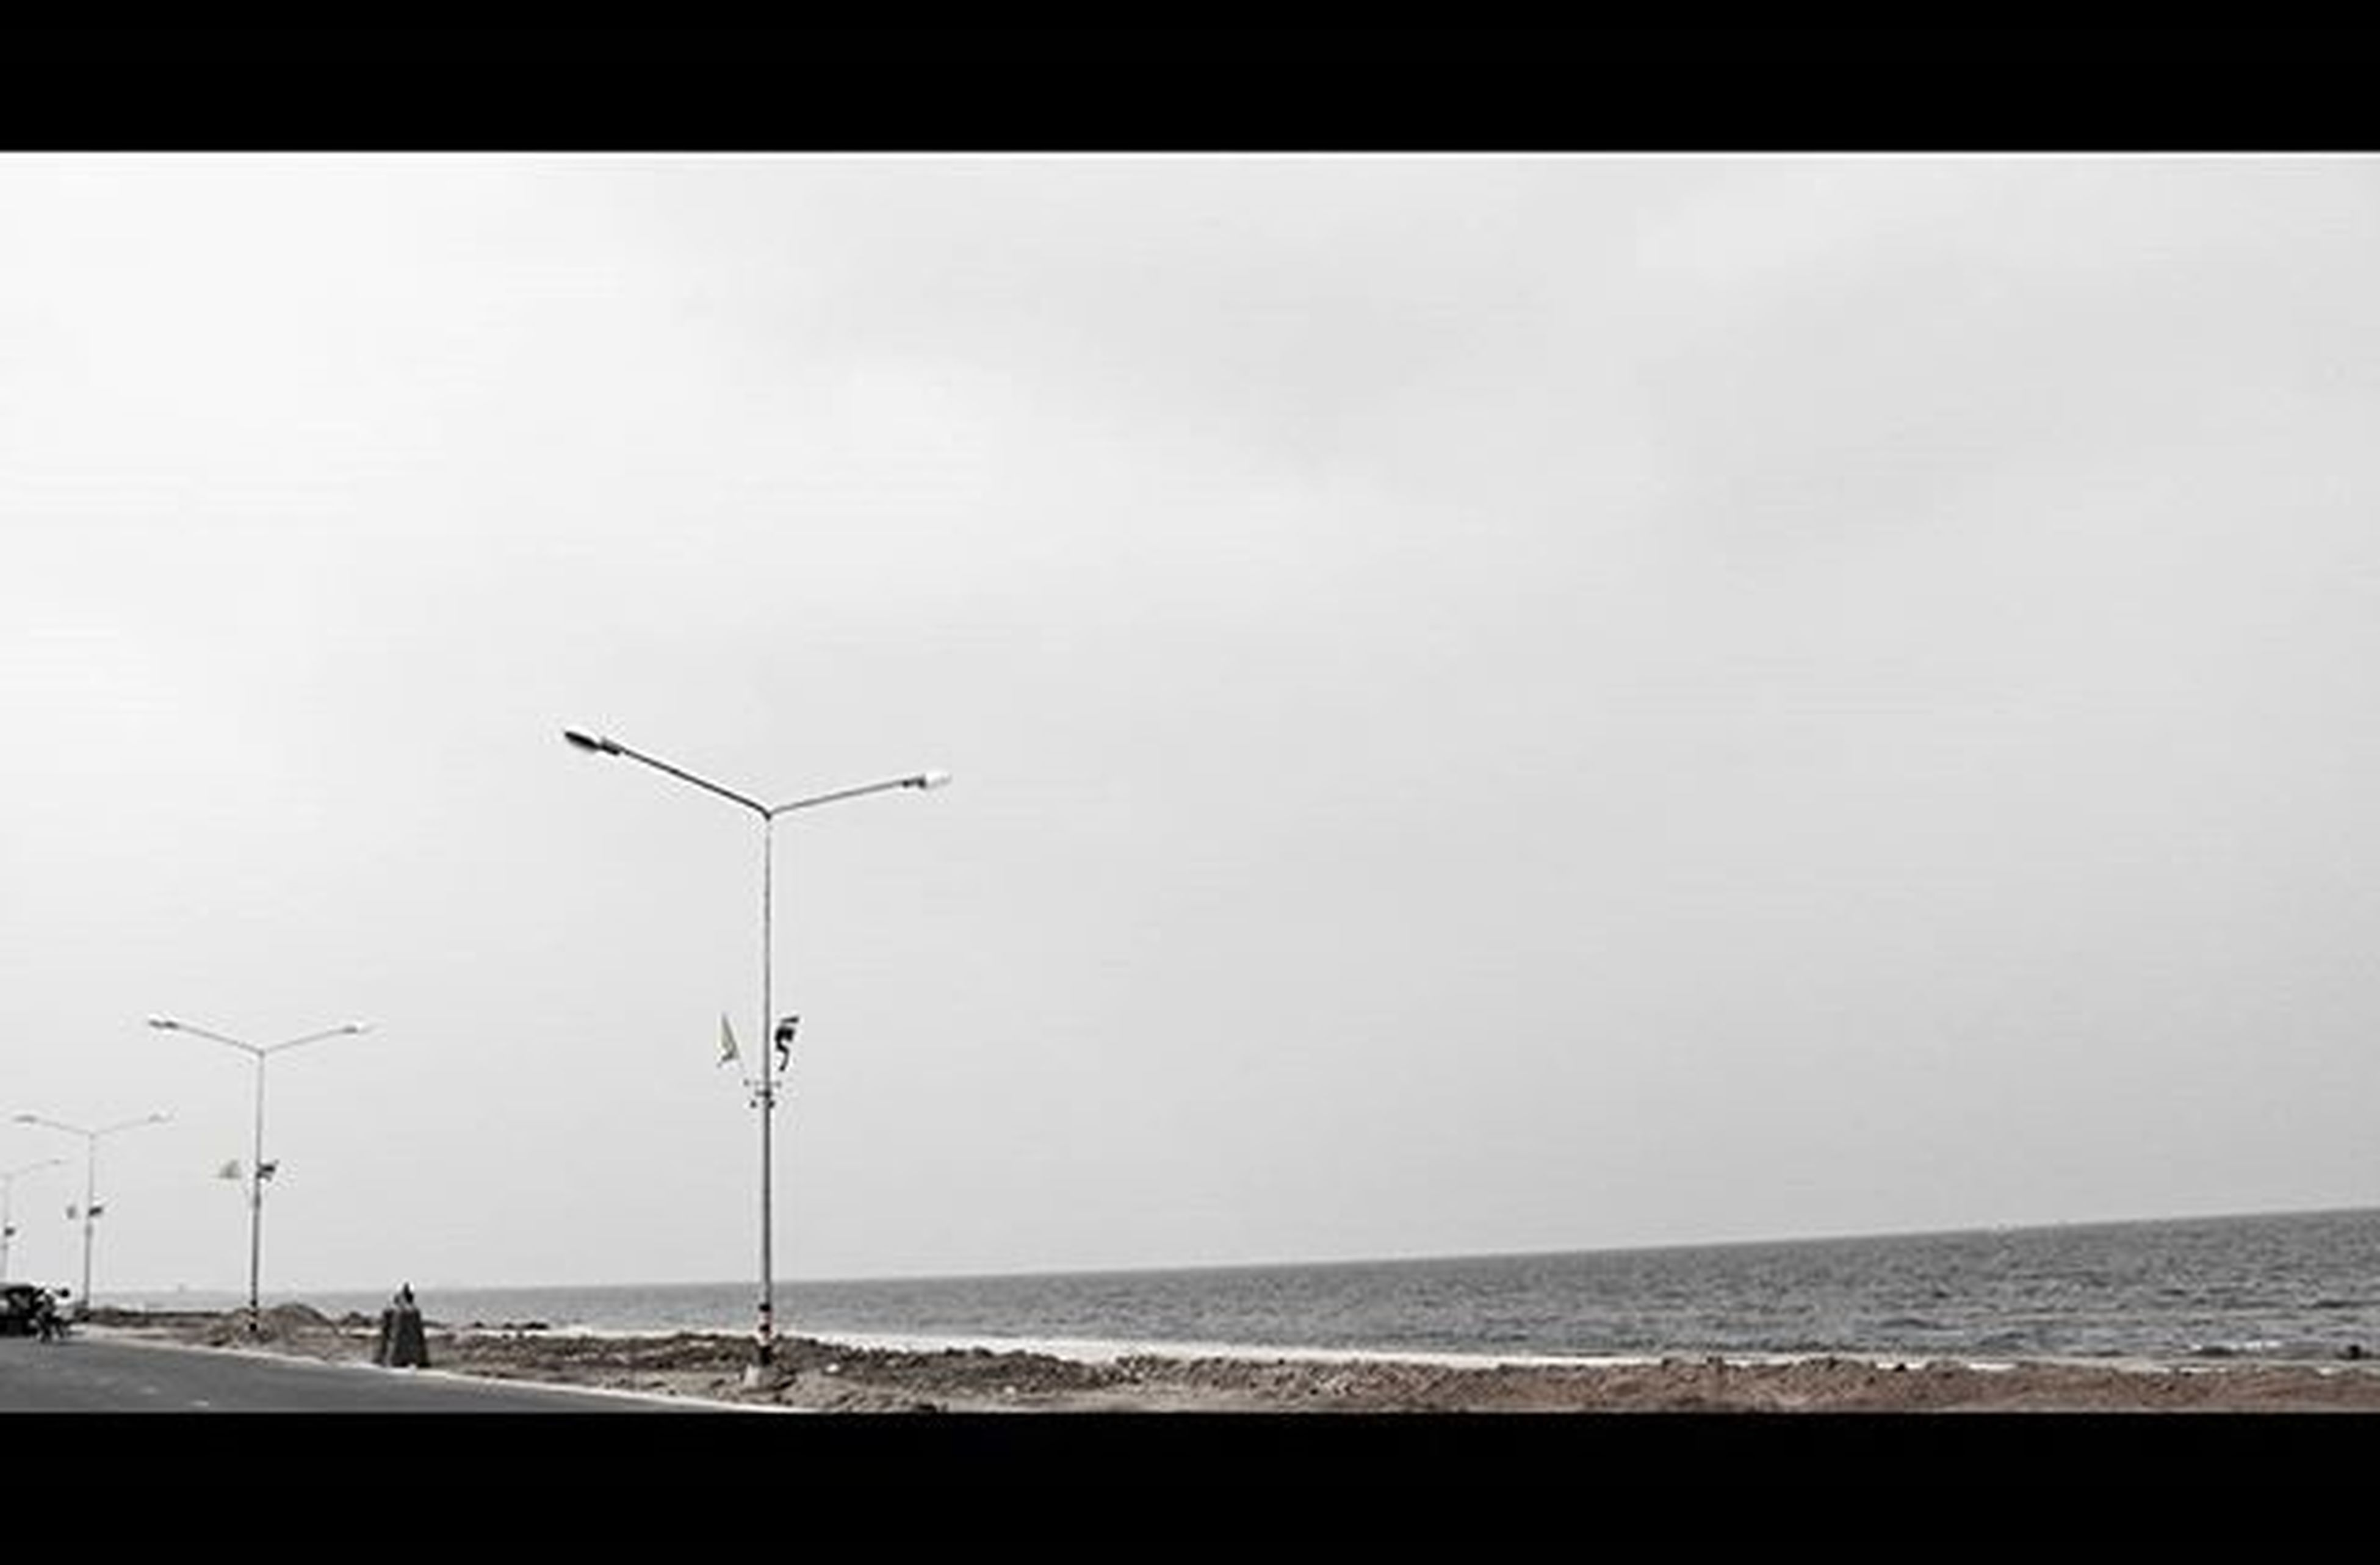 sea, horizon over water, beach, water, clear sky, copy space, shore, tranquility, tranquil scene, scenics, sand, beauty in nature, nature, street light, idyllic, sky, outdoors, incidental people, coastline, remote